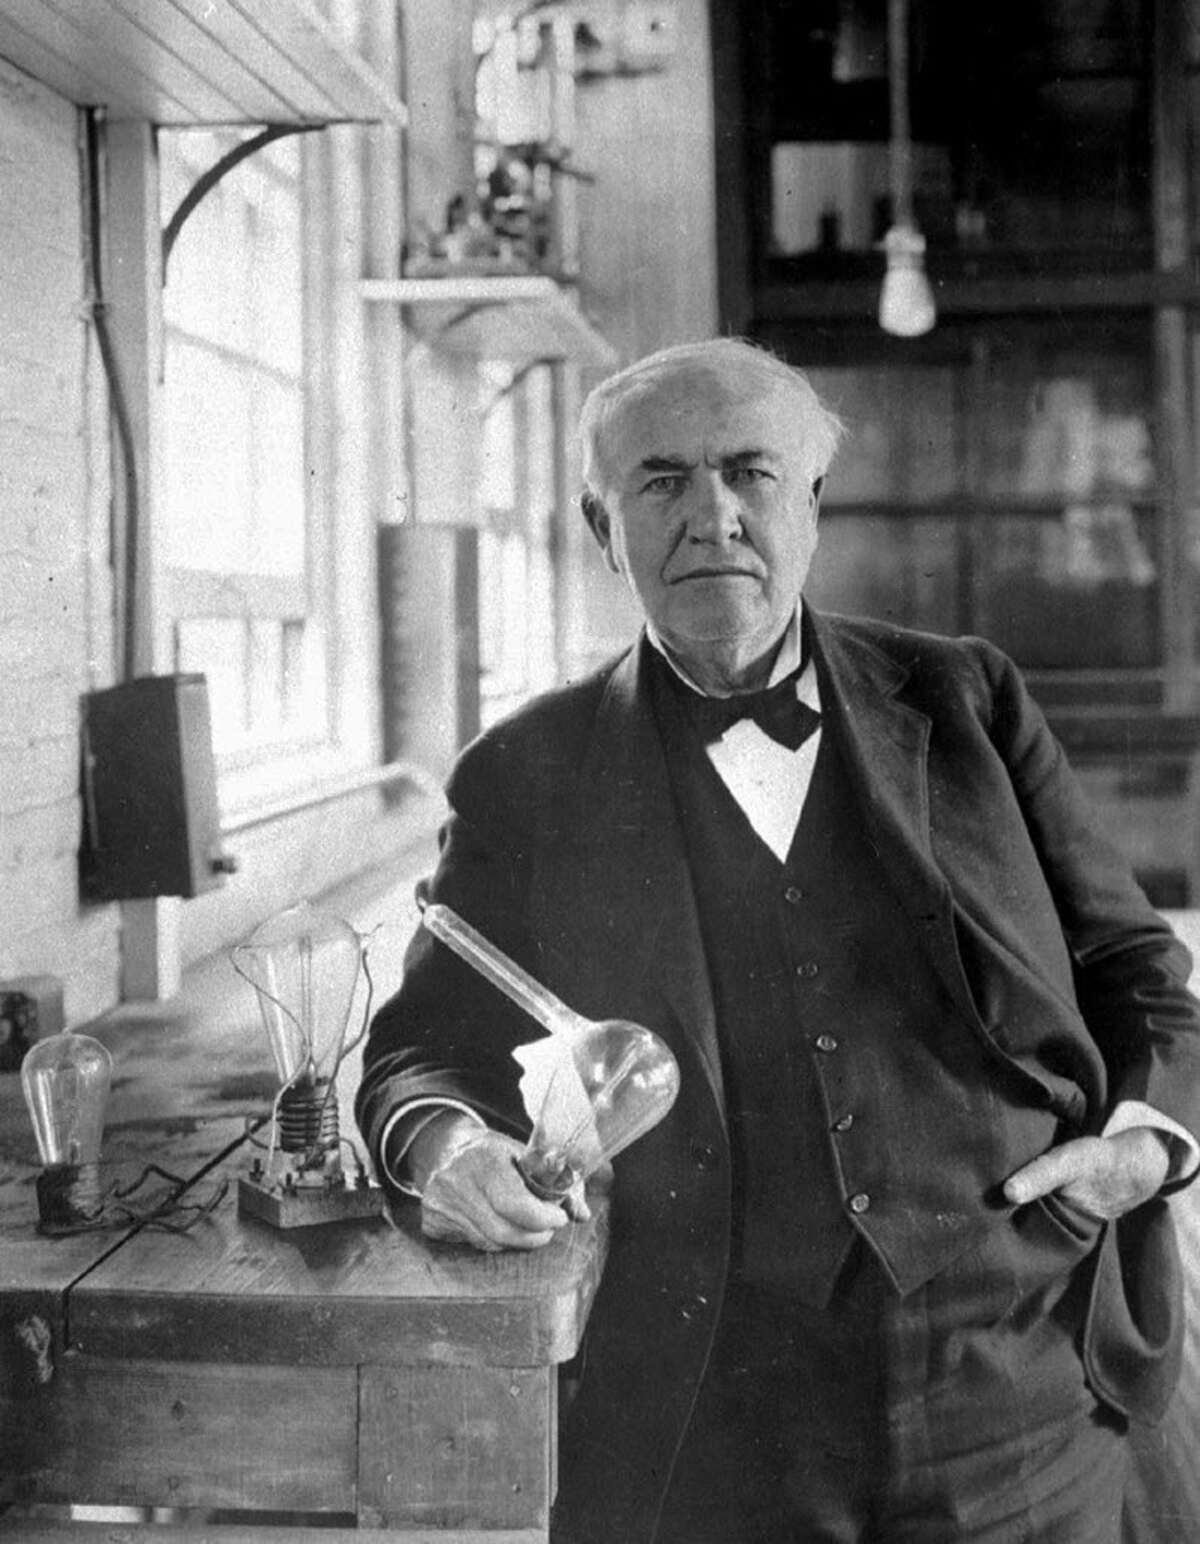 Thomas Alva Edison, who developed the first electric light bulb, is shown in his laboratory in West Orange, N.J., in this undated photo. Edison holds the